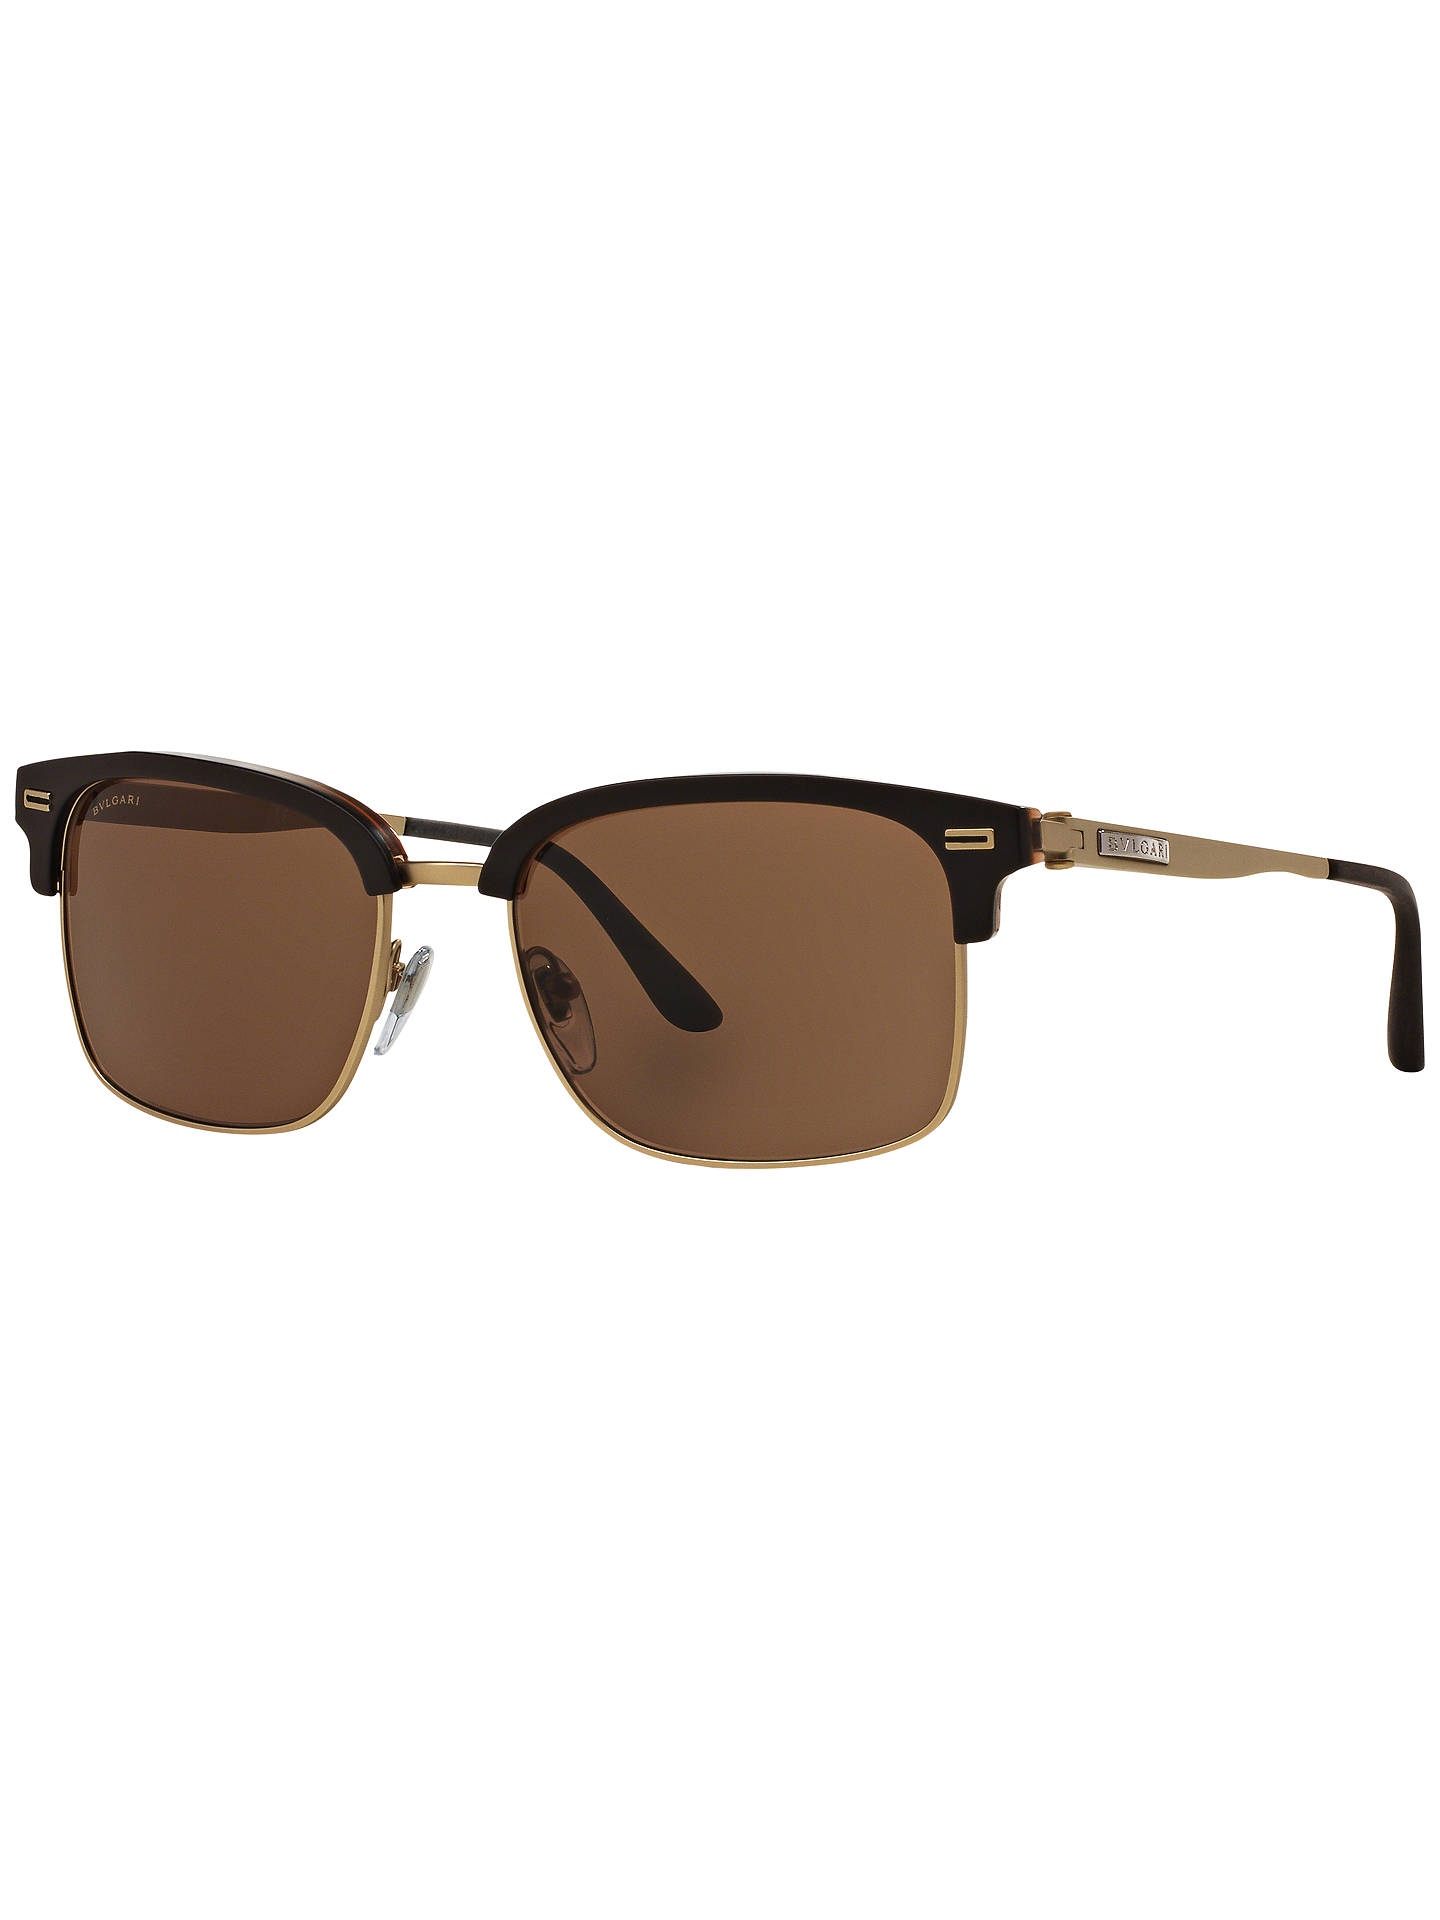 BuyBVLGARI BV7026 D-Frame Sunglasses, Black/Gold Online at johnlewis.com